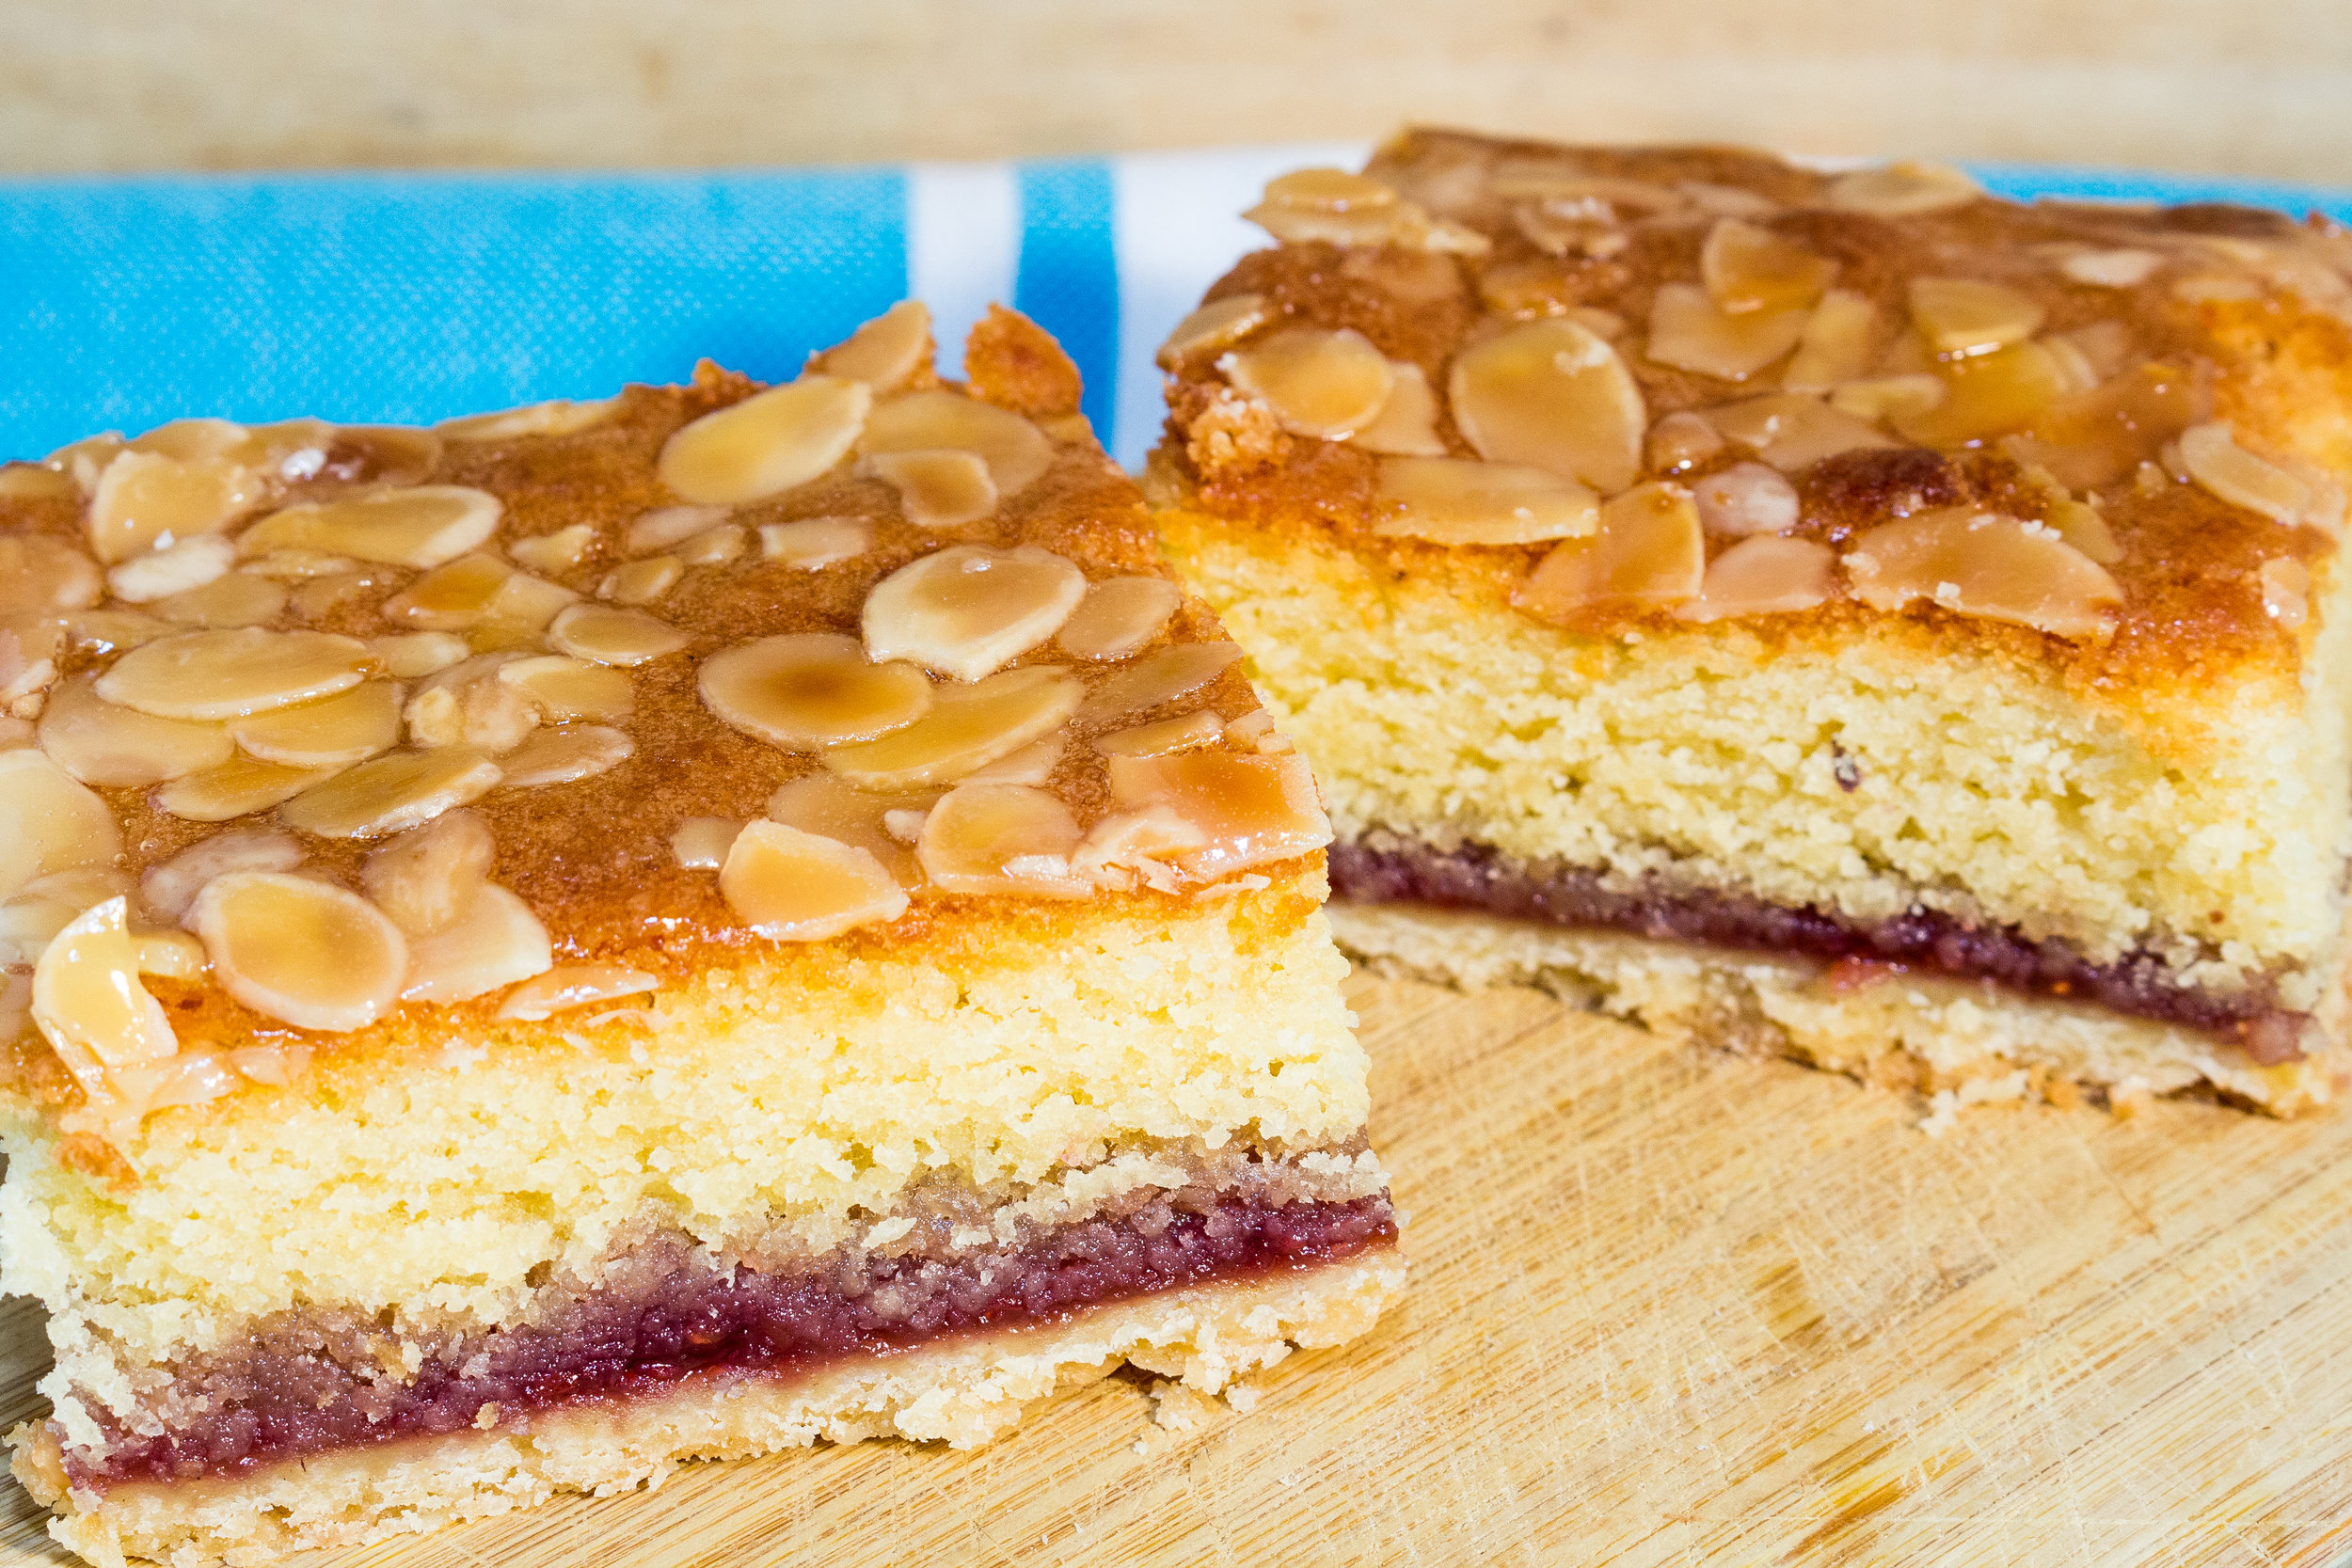 BAKEWELL TART ² ⁴ ⁷ ¹⁰ - OUR VERSION OF THE CLASSIC BAKE WELL TART WITH ALL OF THE DELICIOUS LAYERS TOPPED WITH A STICKY APRICOT GLAZE AND TOASTED ALMONDS